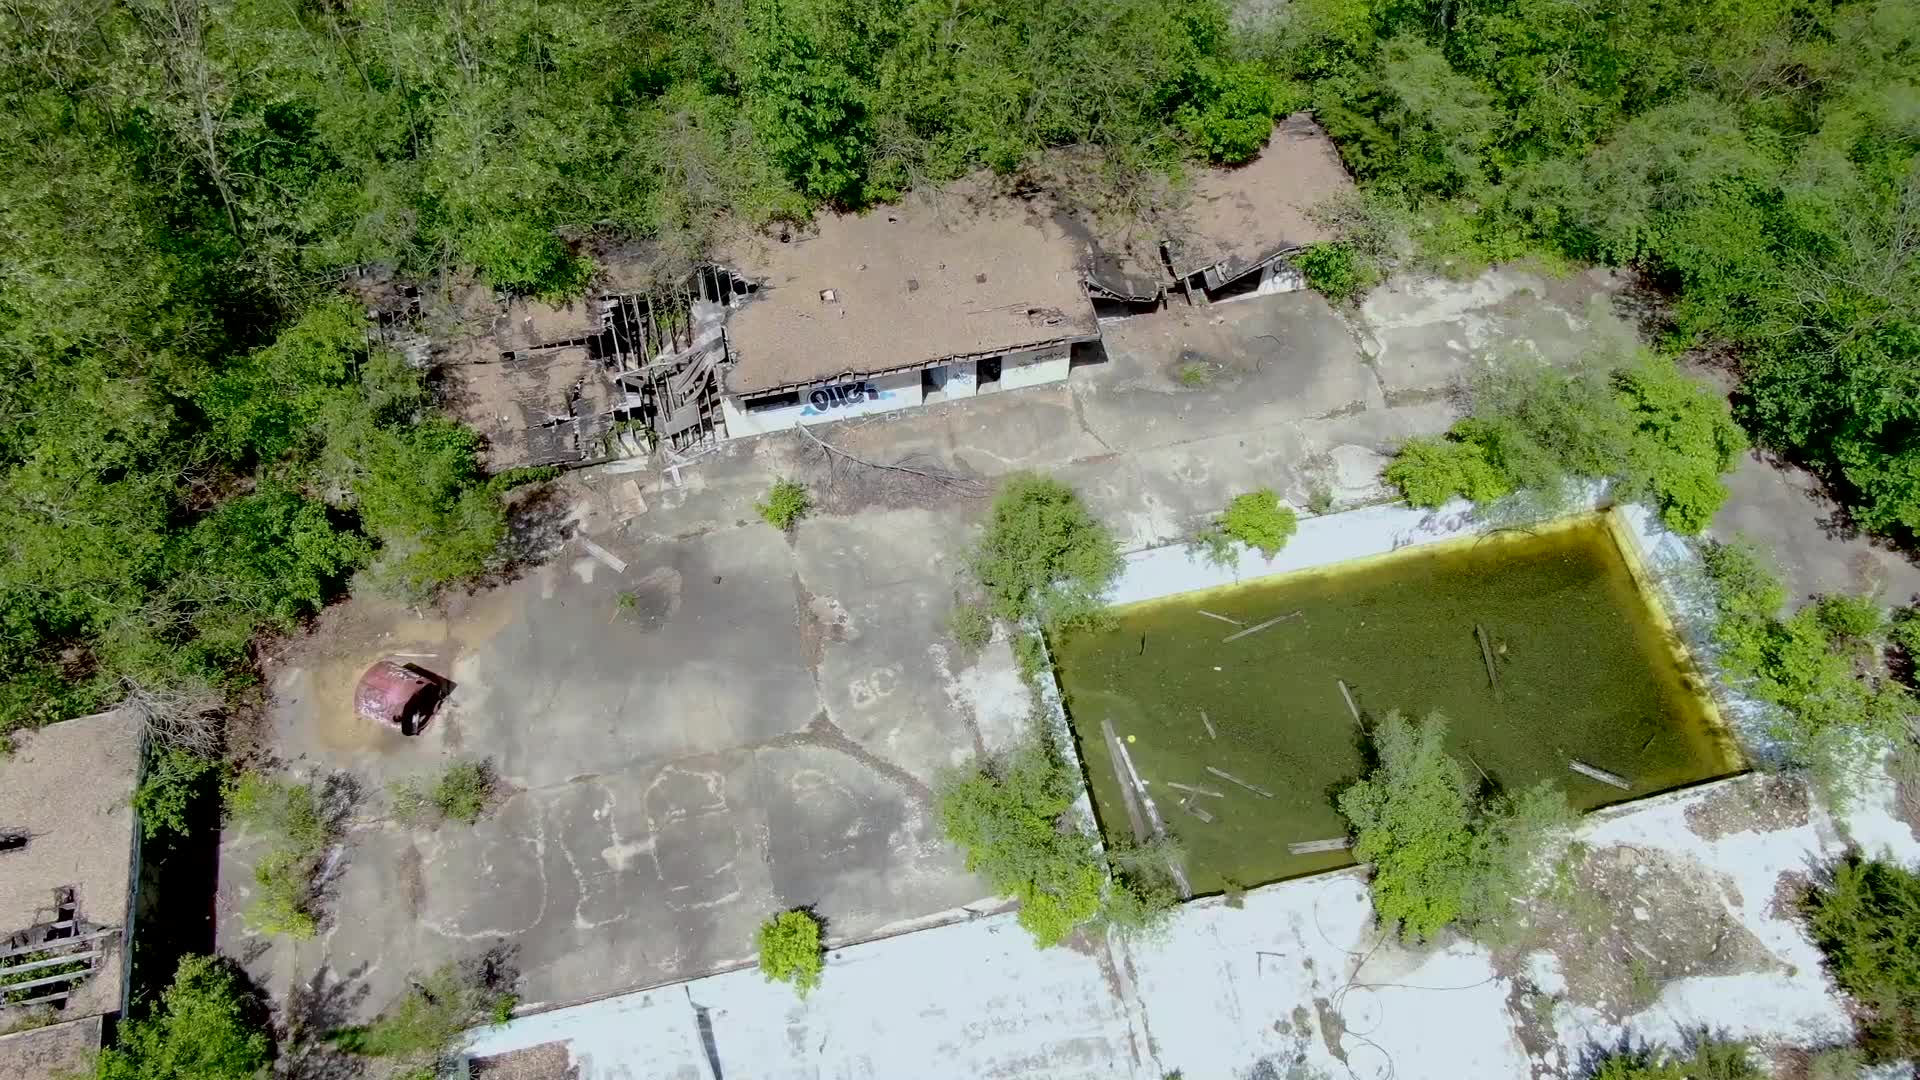 Picture of destroyed building, pool filled with old green water